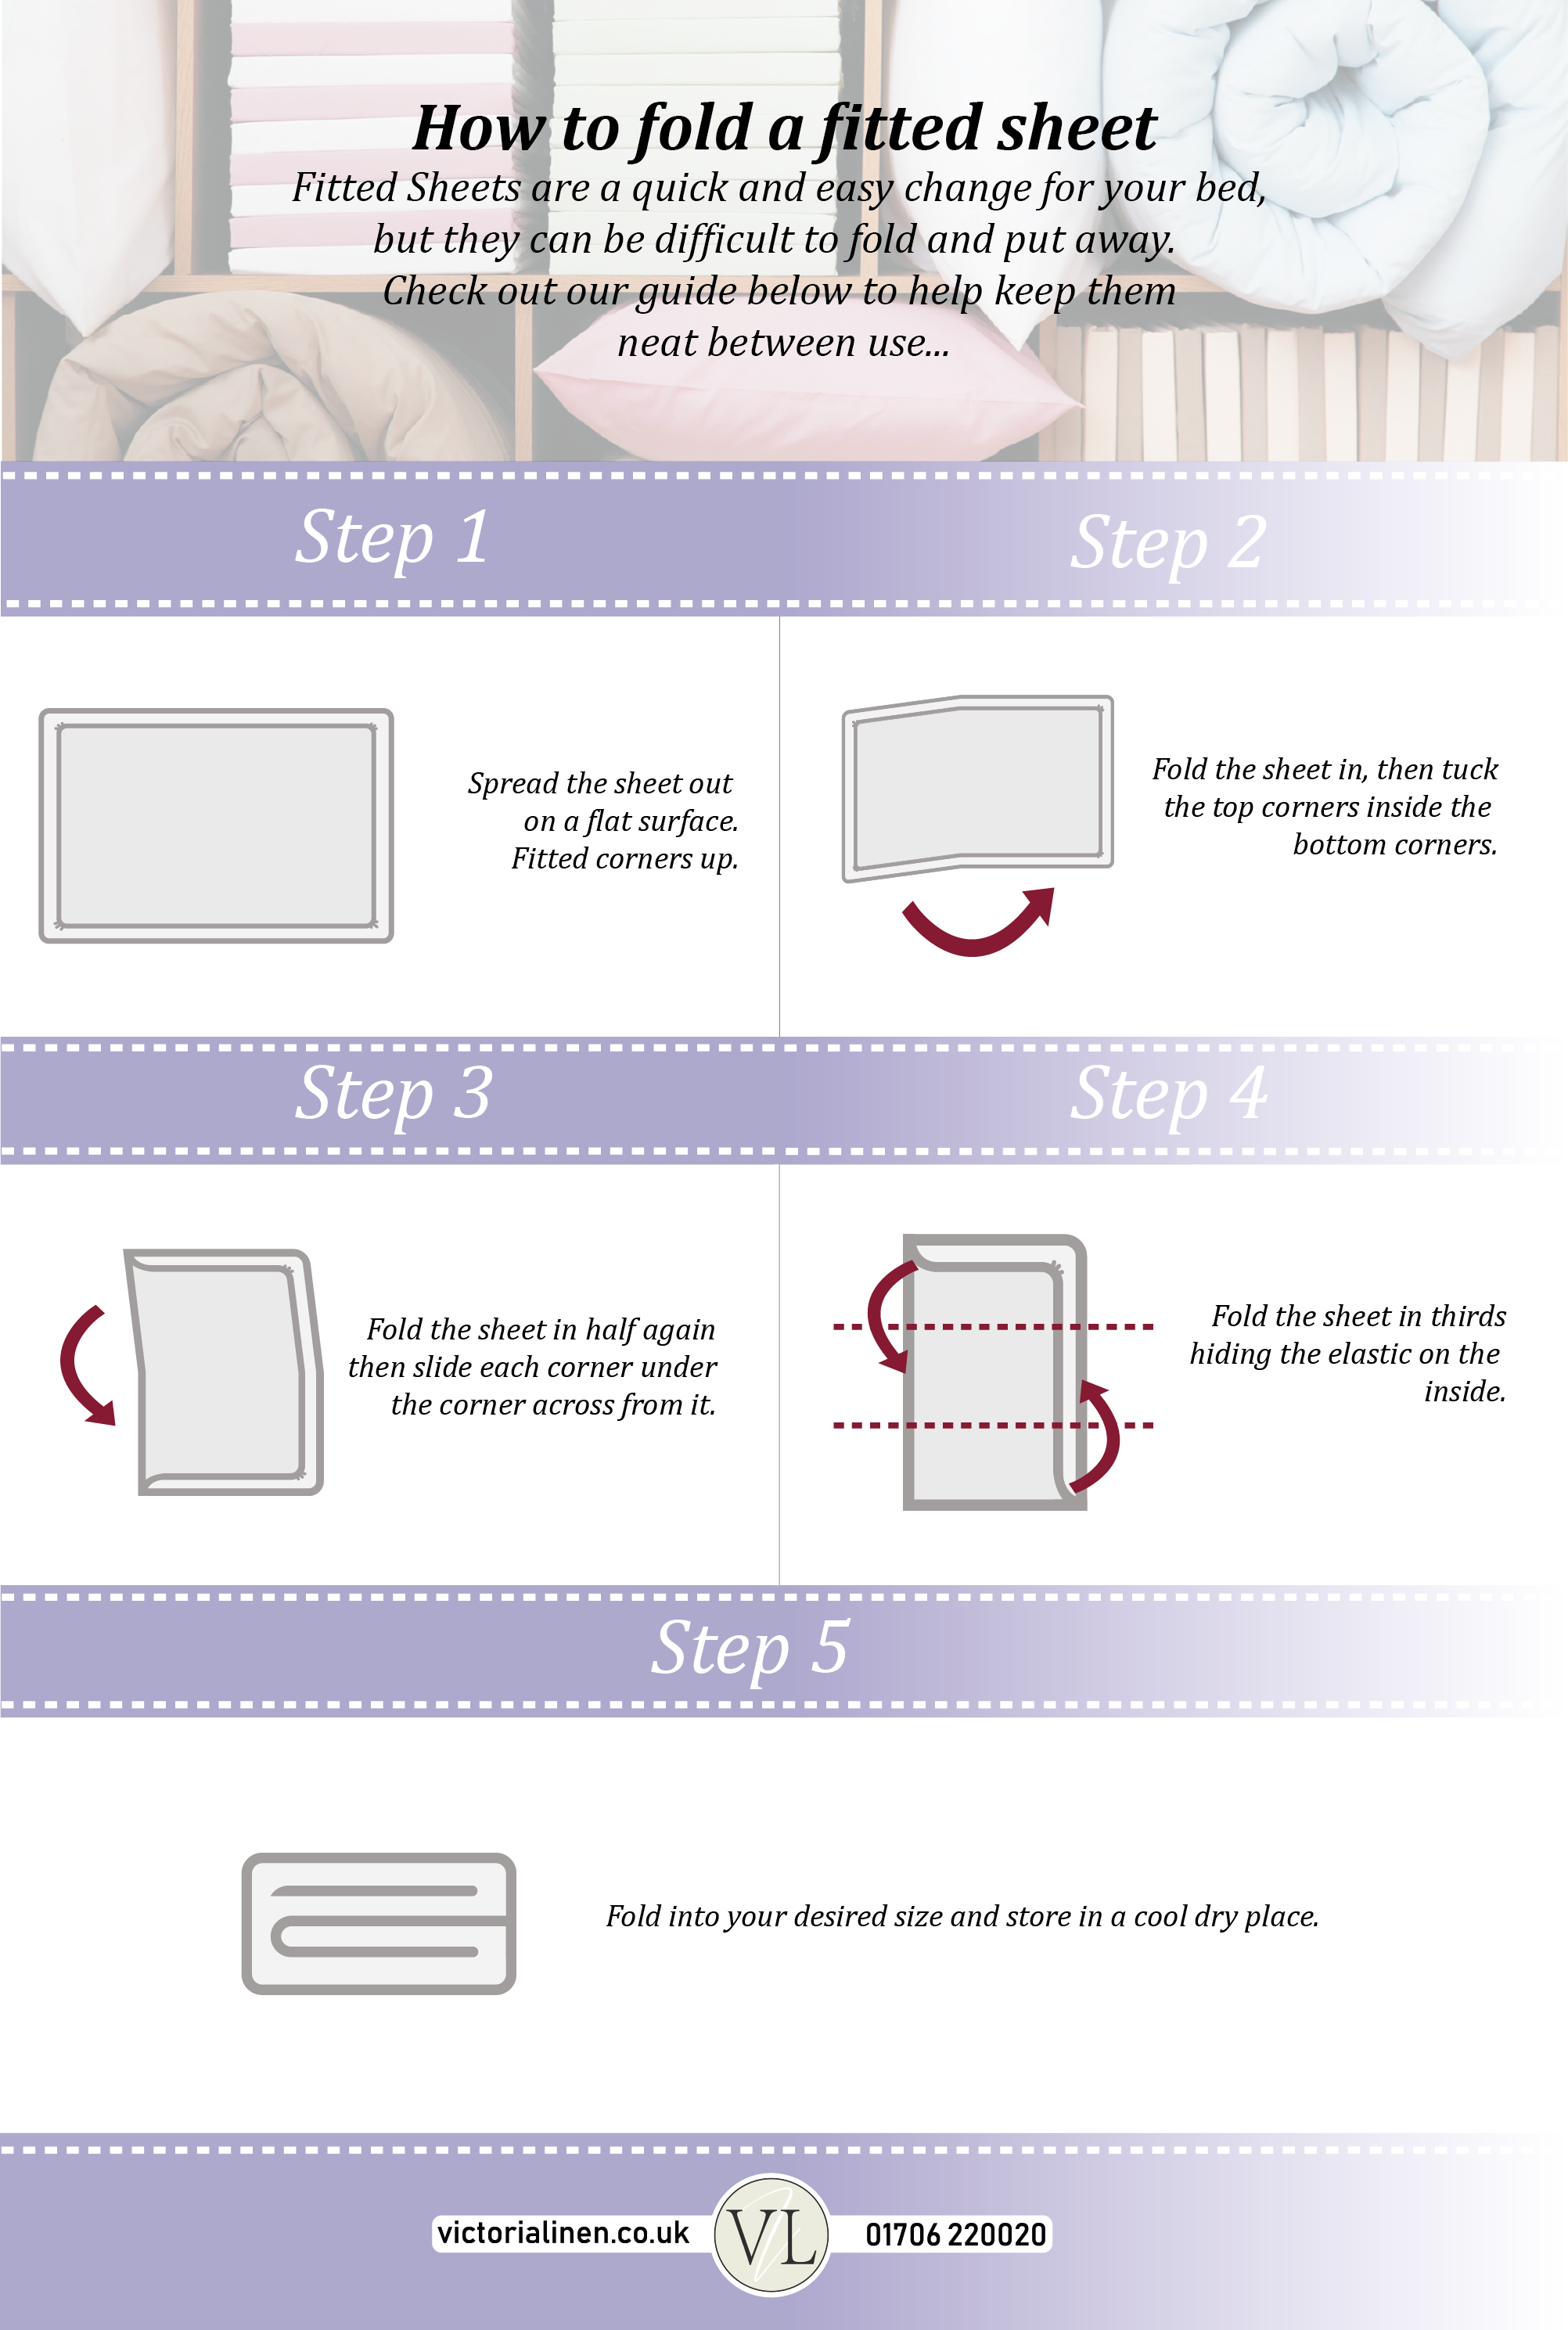 How to fold a fitted sheet